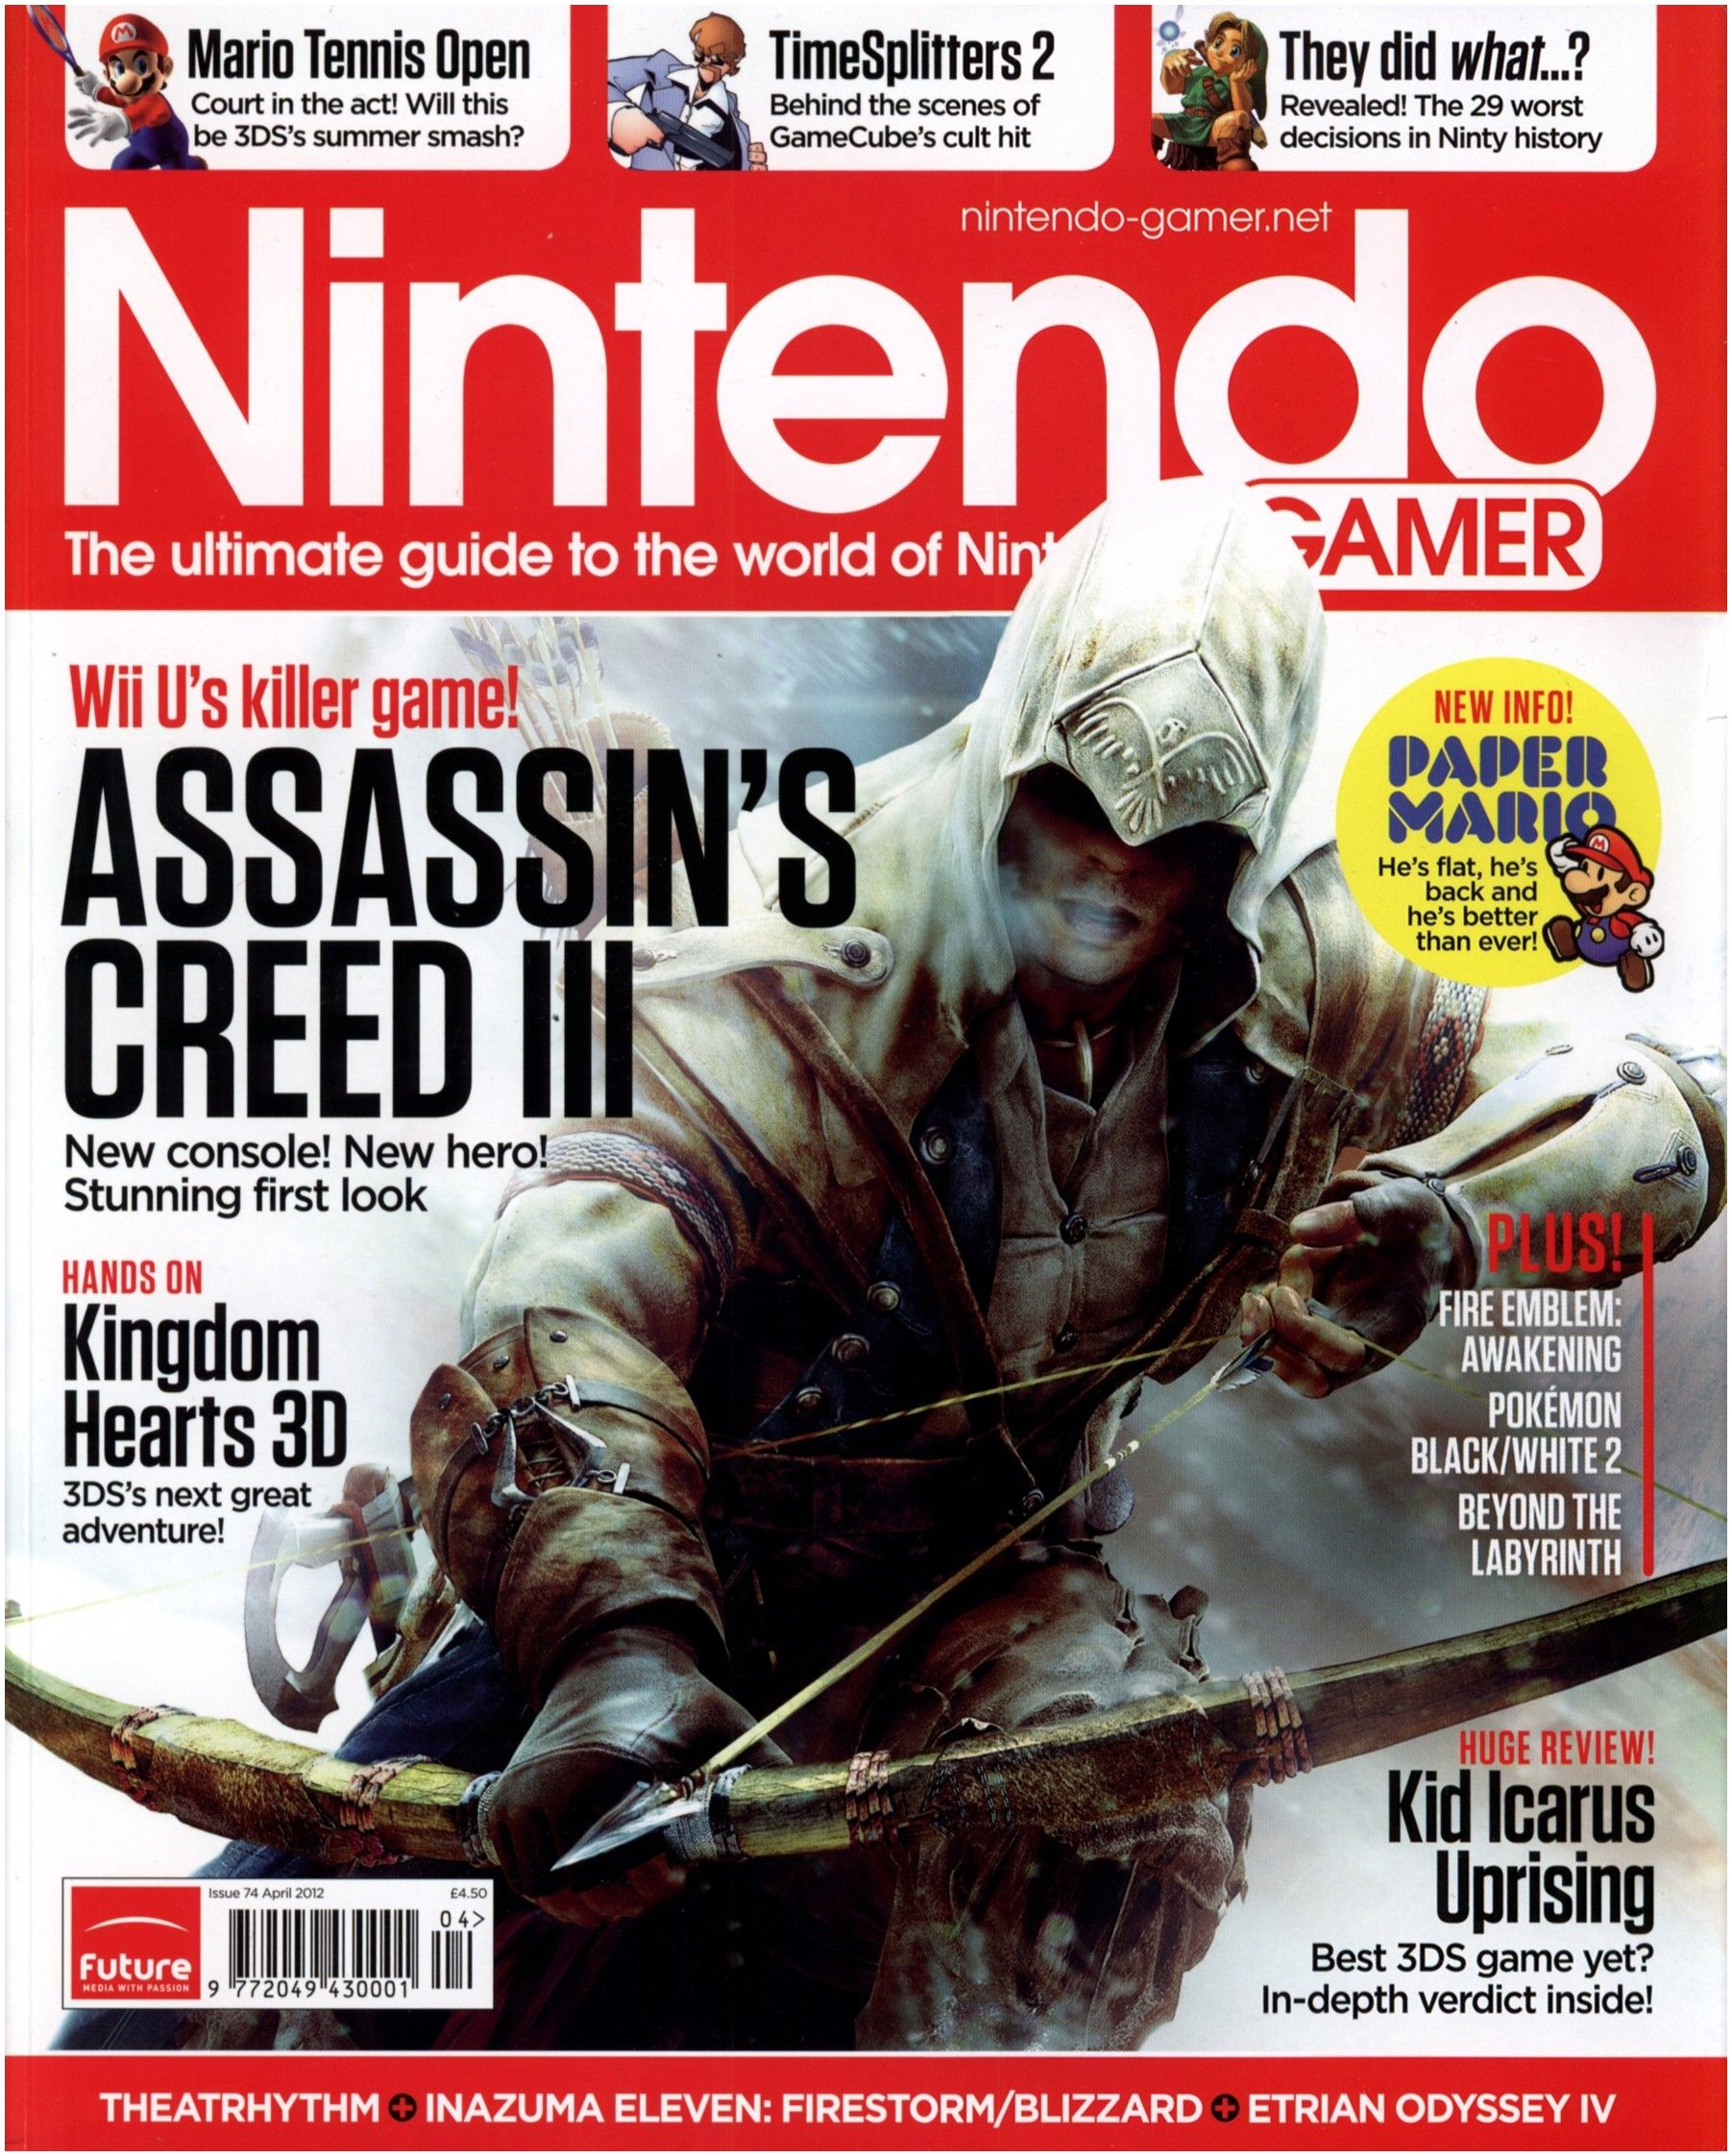 Magazine issue Date Nintendo Gamer issue 74 Magazines From the Past Wiki